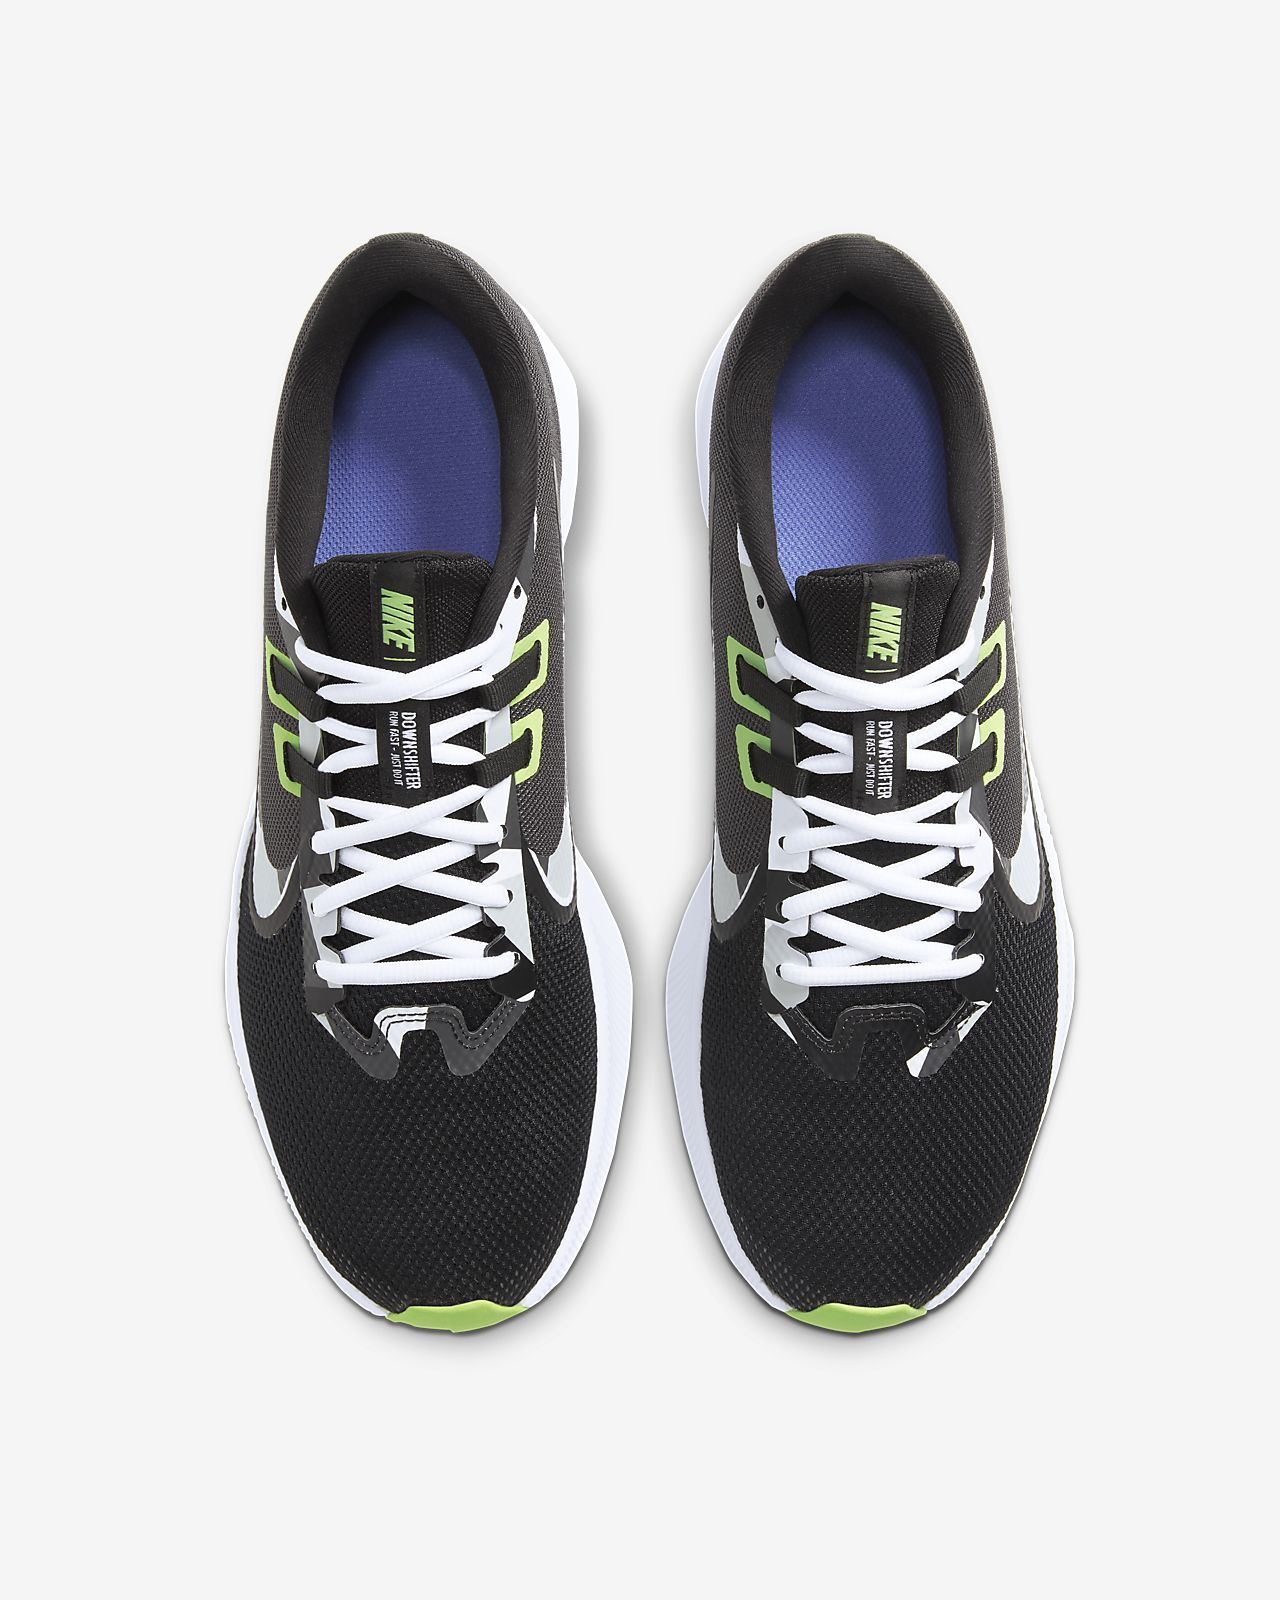 half price info for new design Chaussure de running Nike Downshifter 9 pour Homme. Nike BE